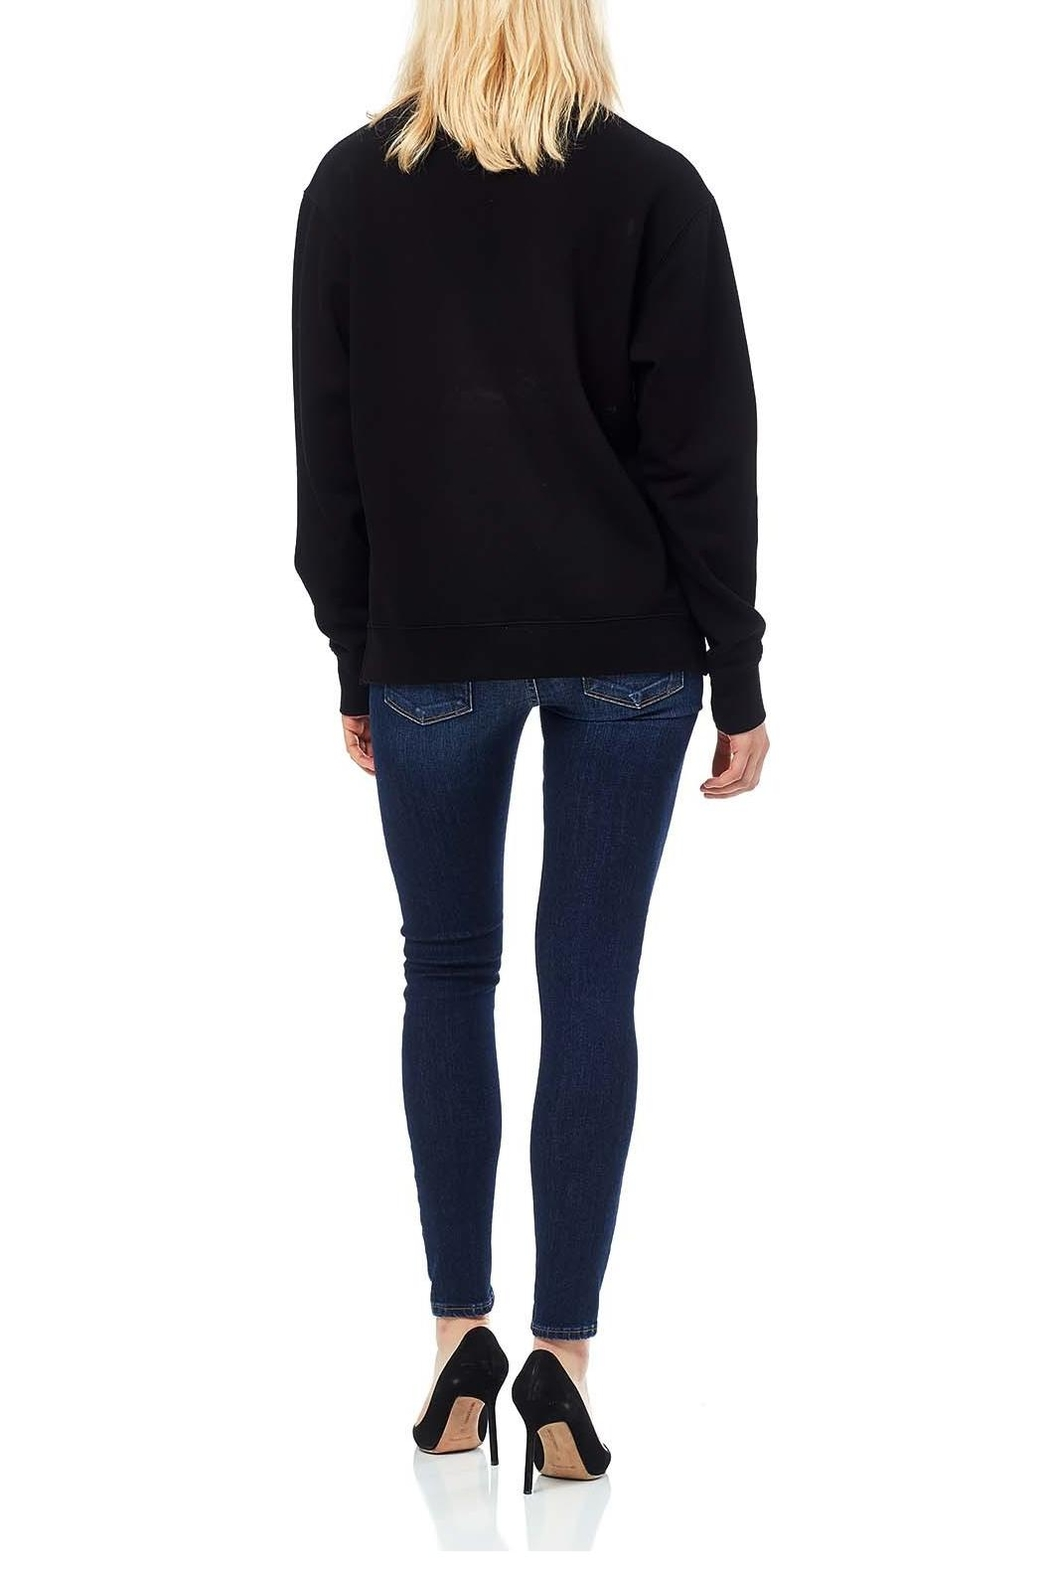 Hudson Jeans Krista Skinny Solo - Side Cropped Image